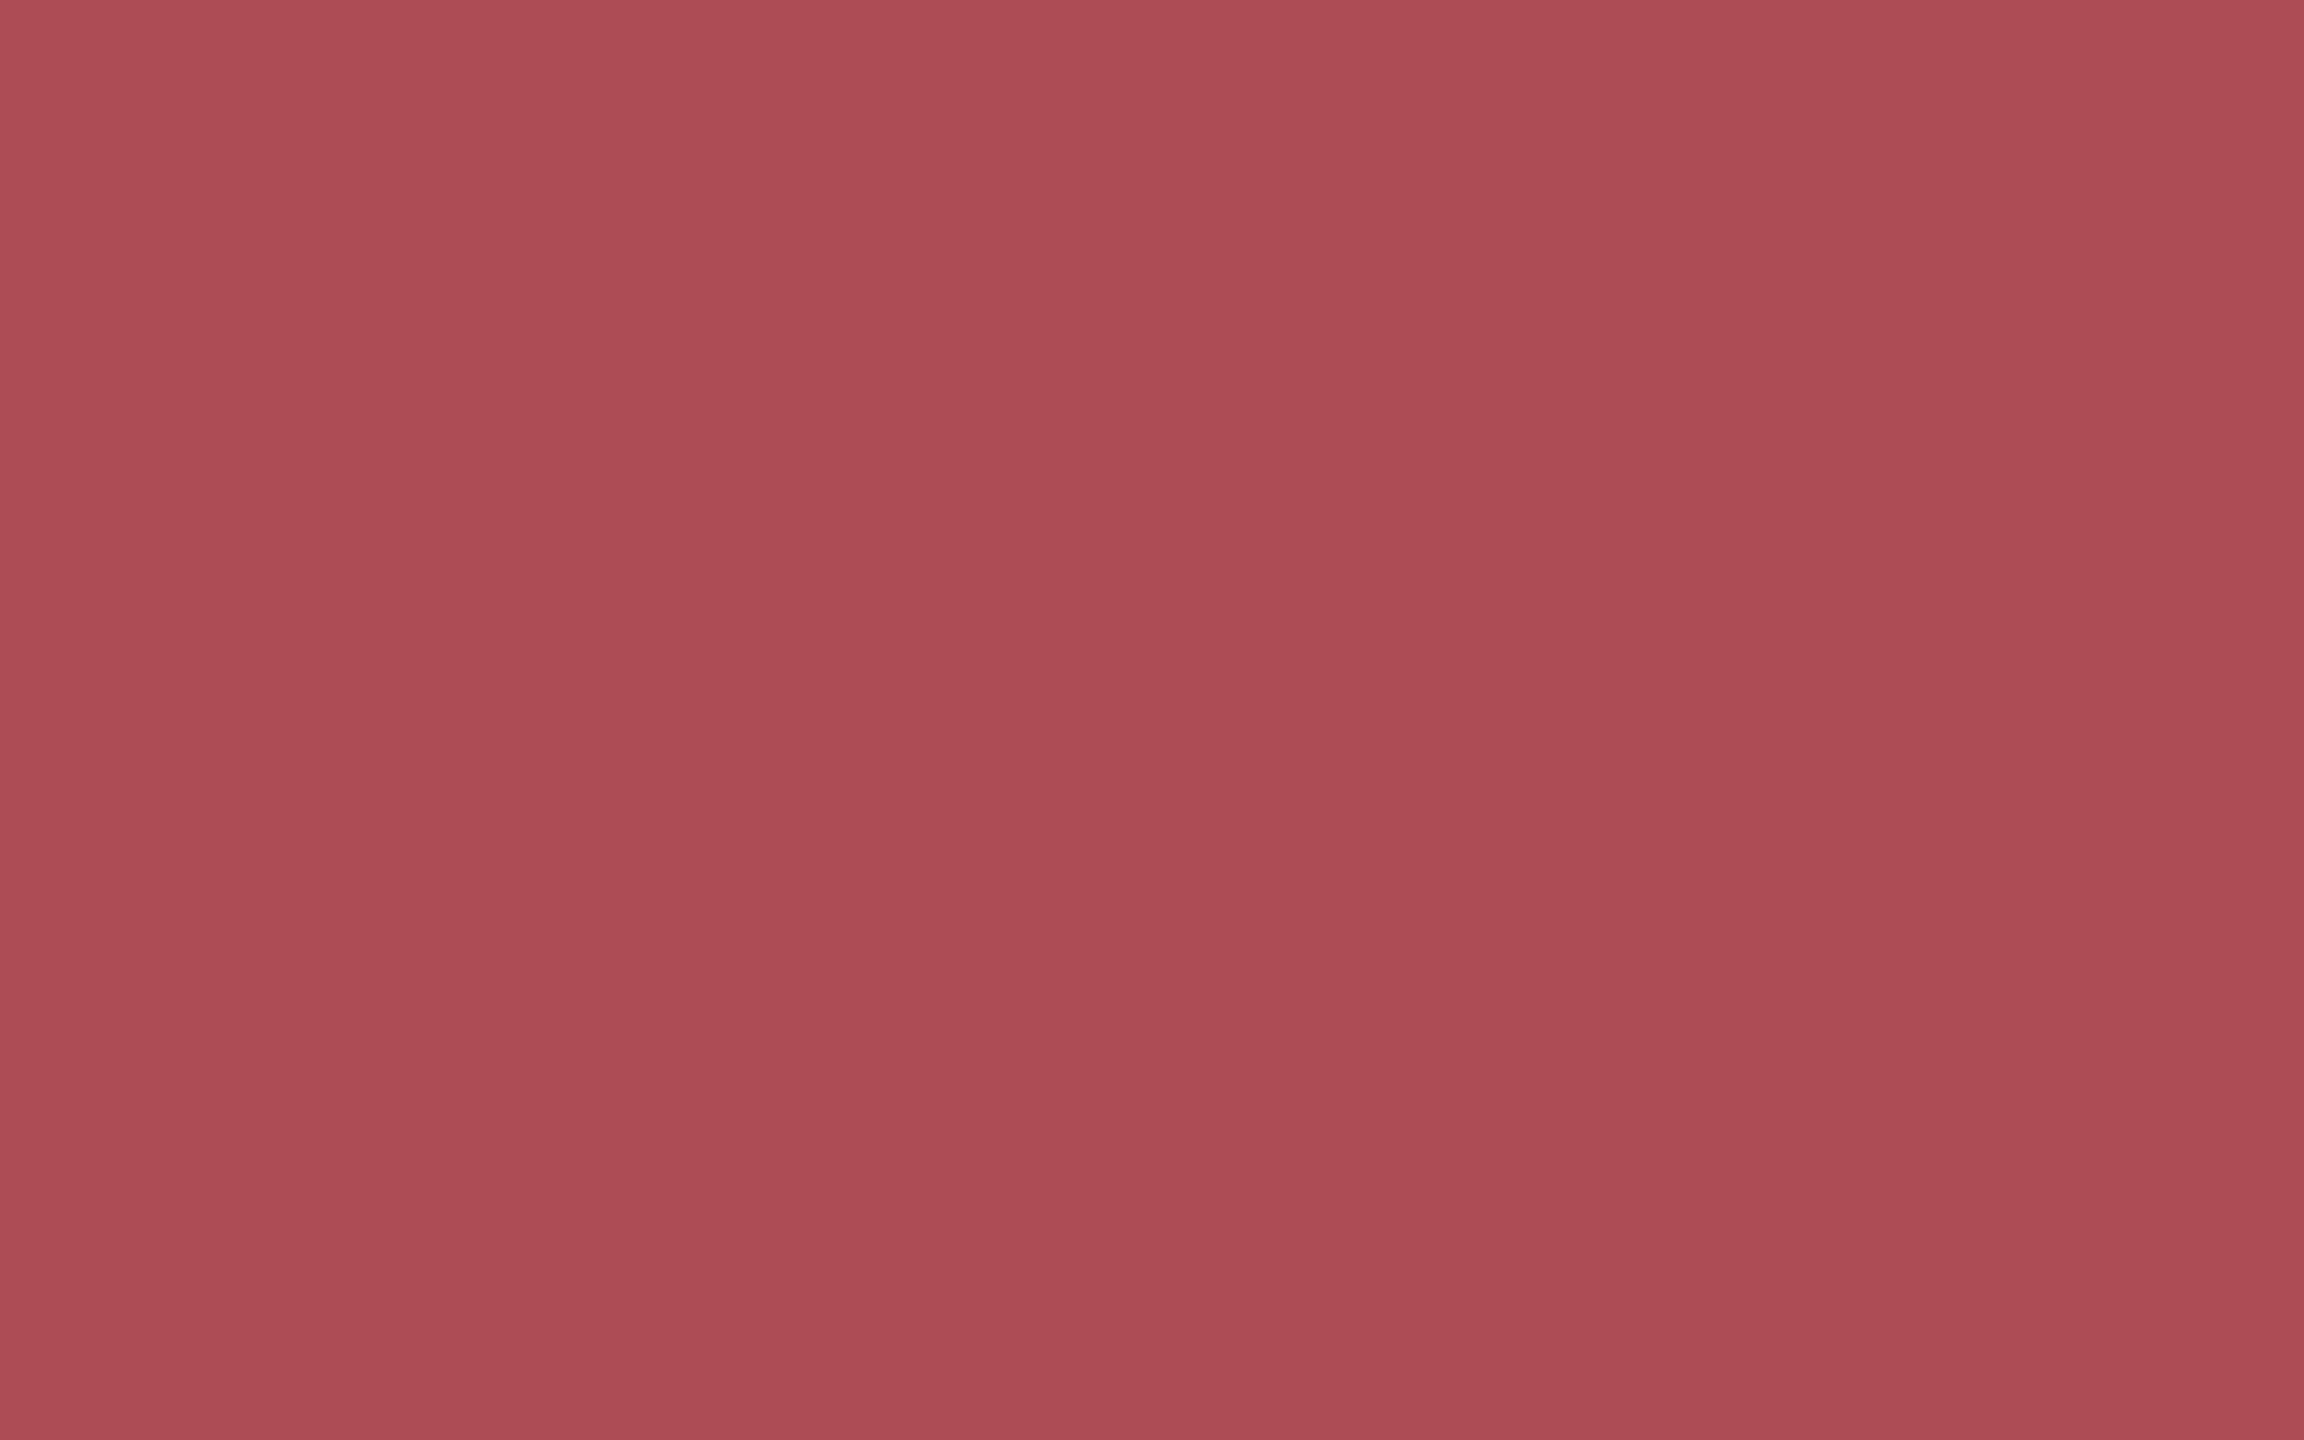 2304x1440 English Red Solid Color Background